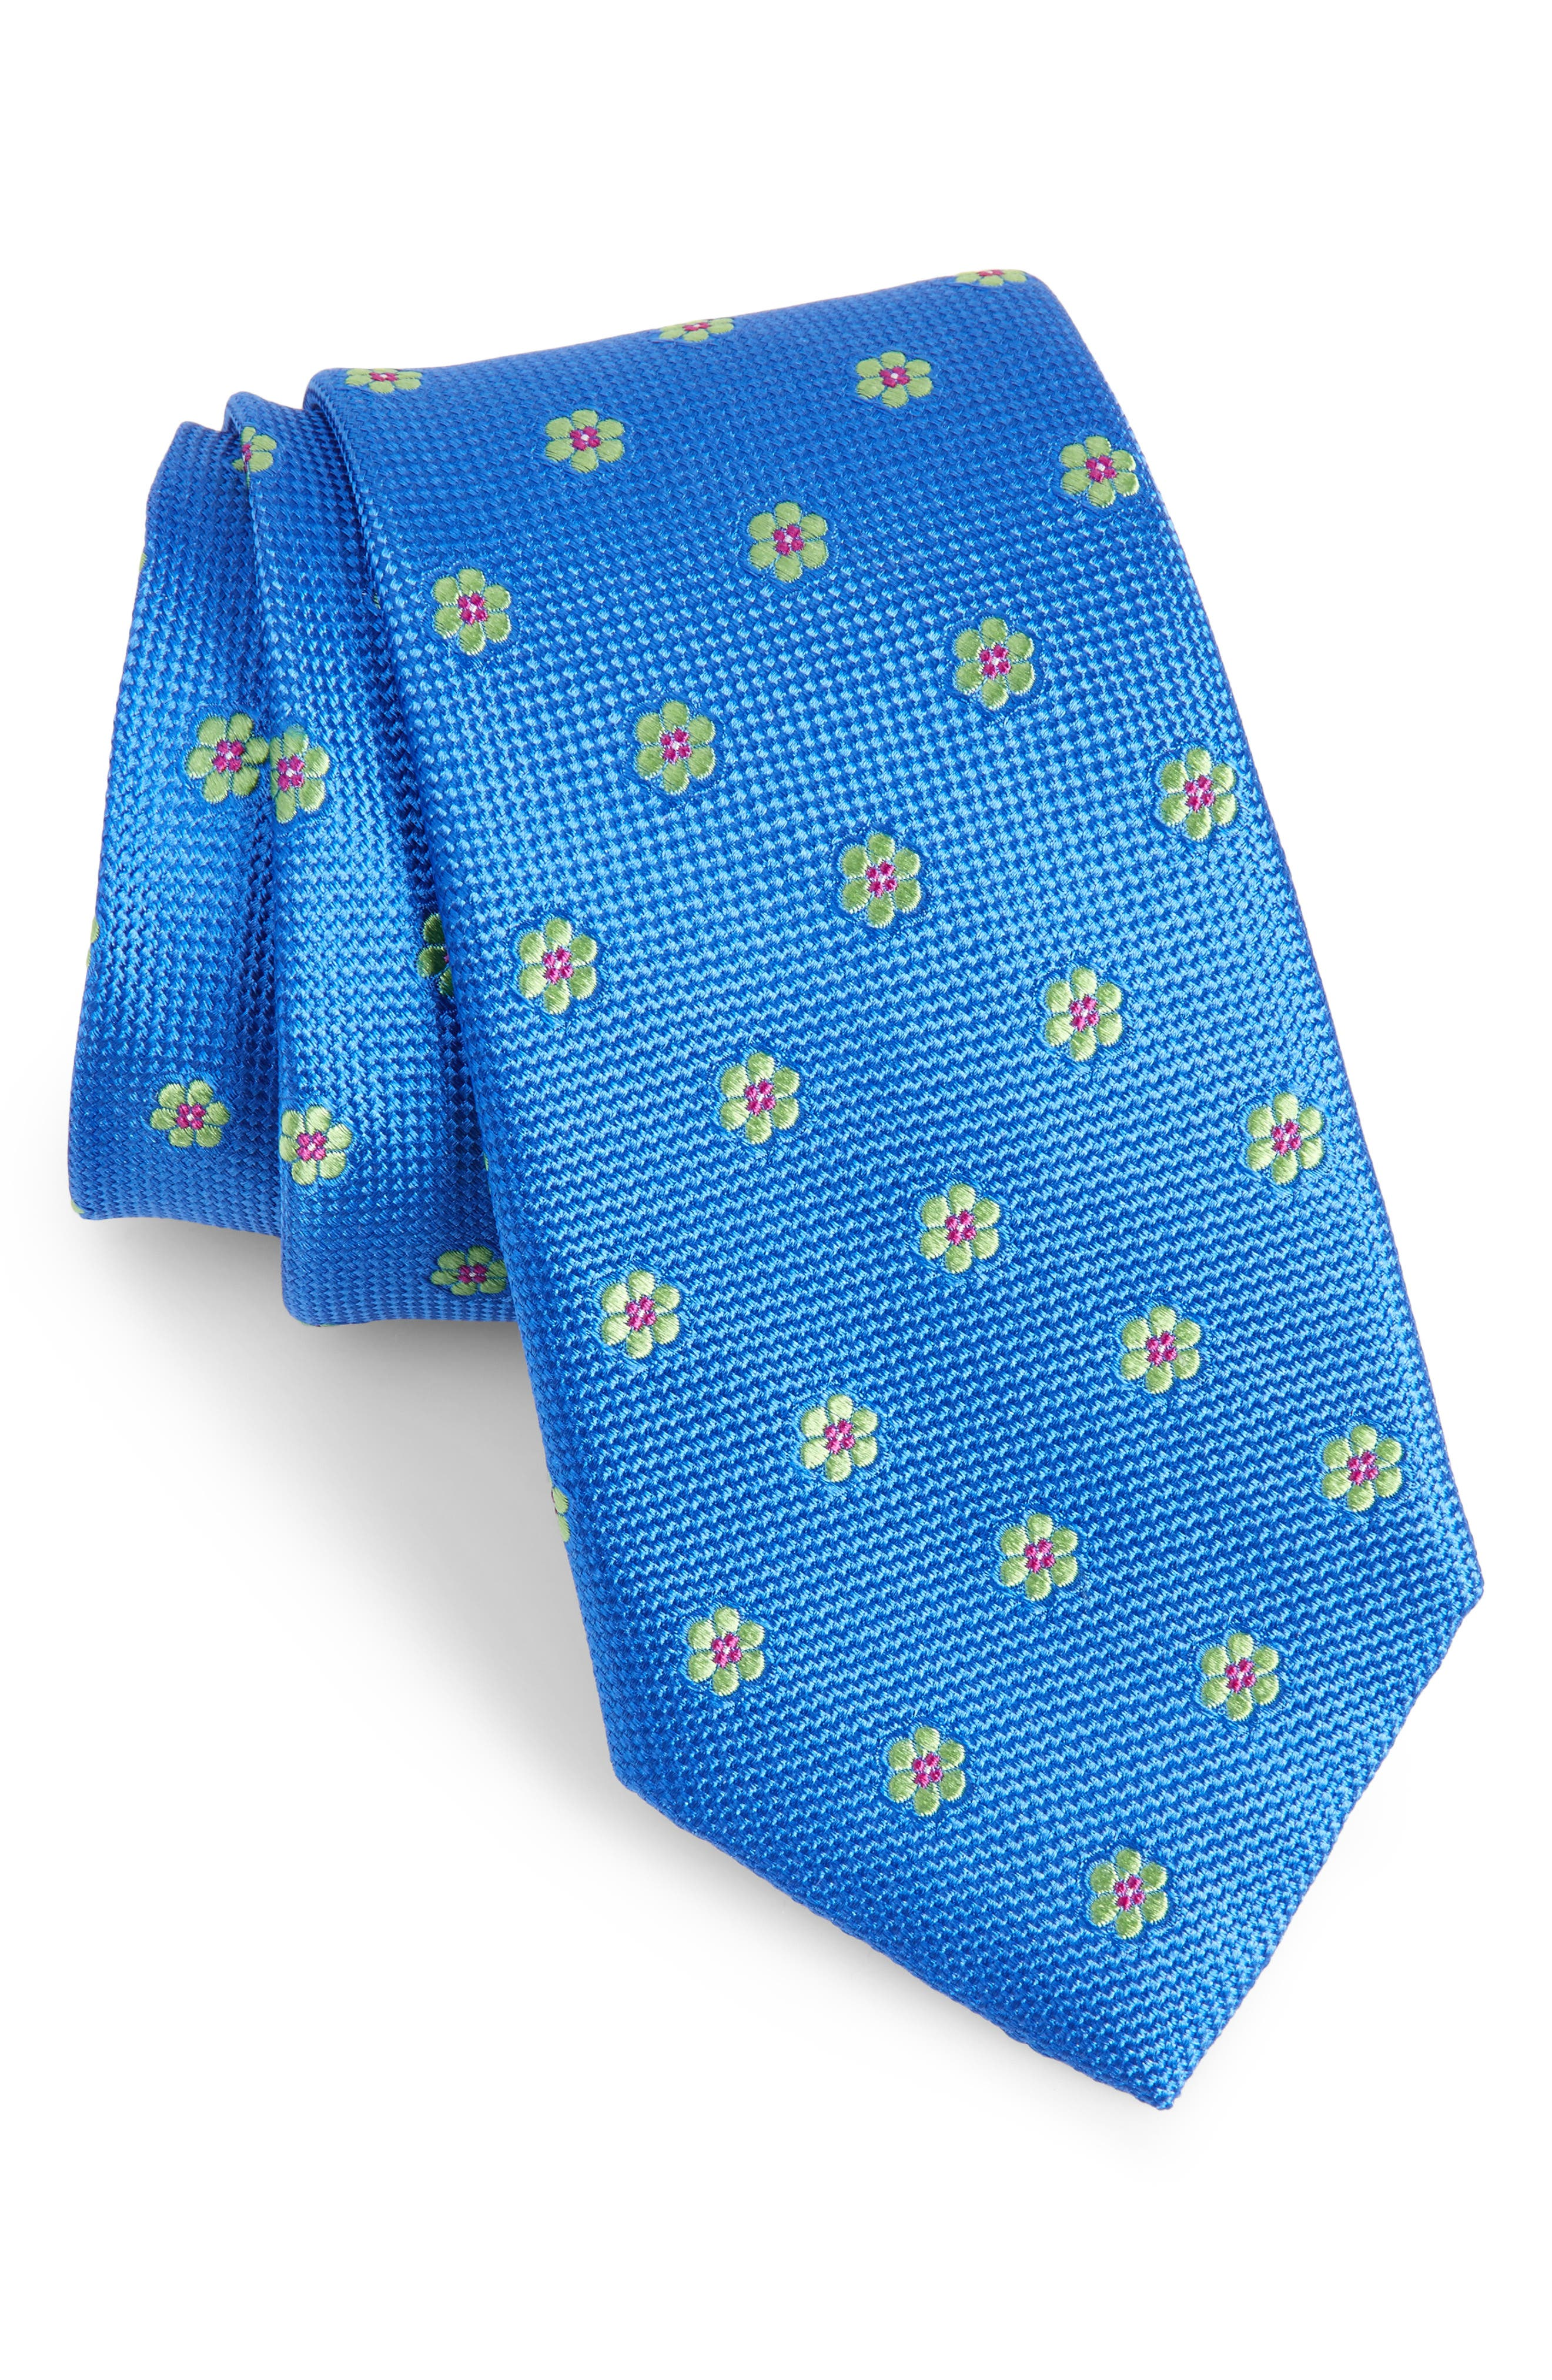 Alternate Image 1 Selected - Calibrate Cloisters Neat Silk Tie